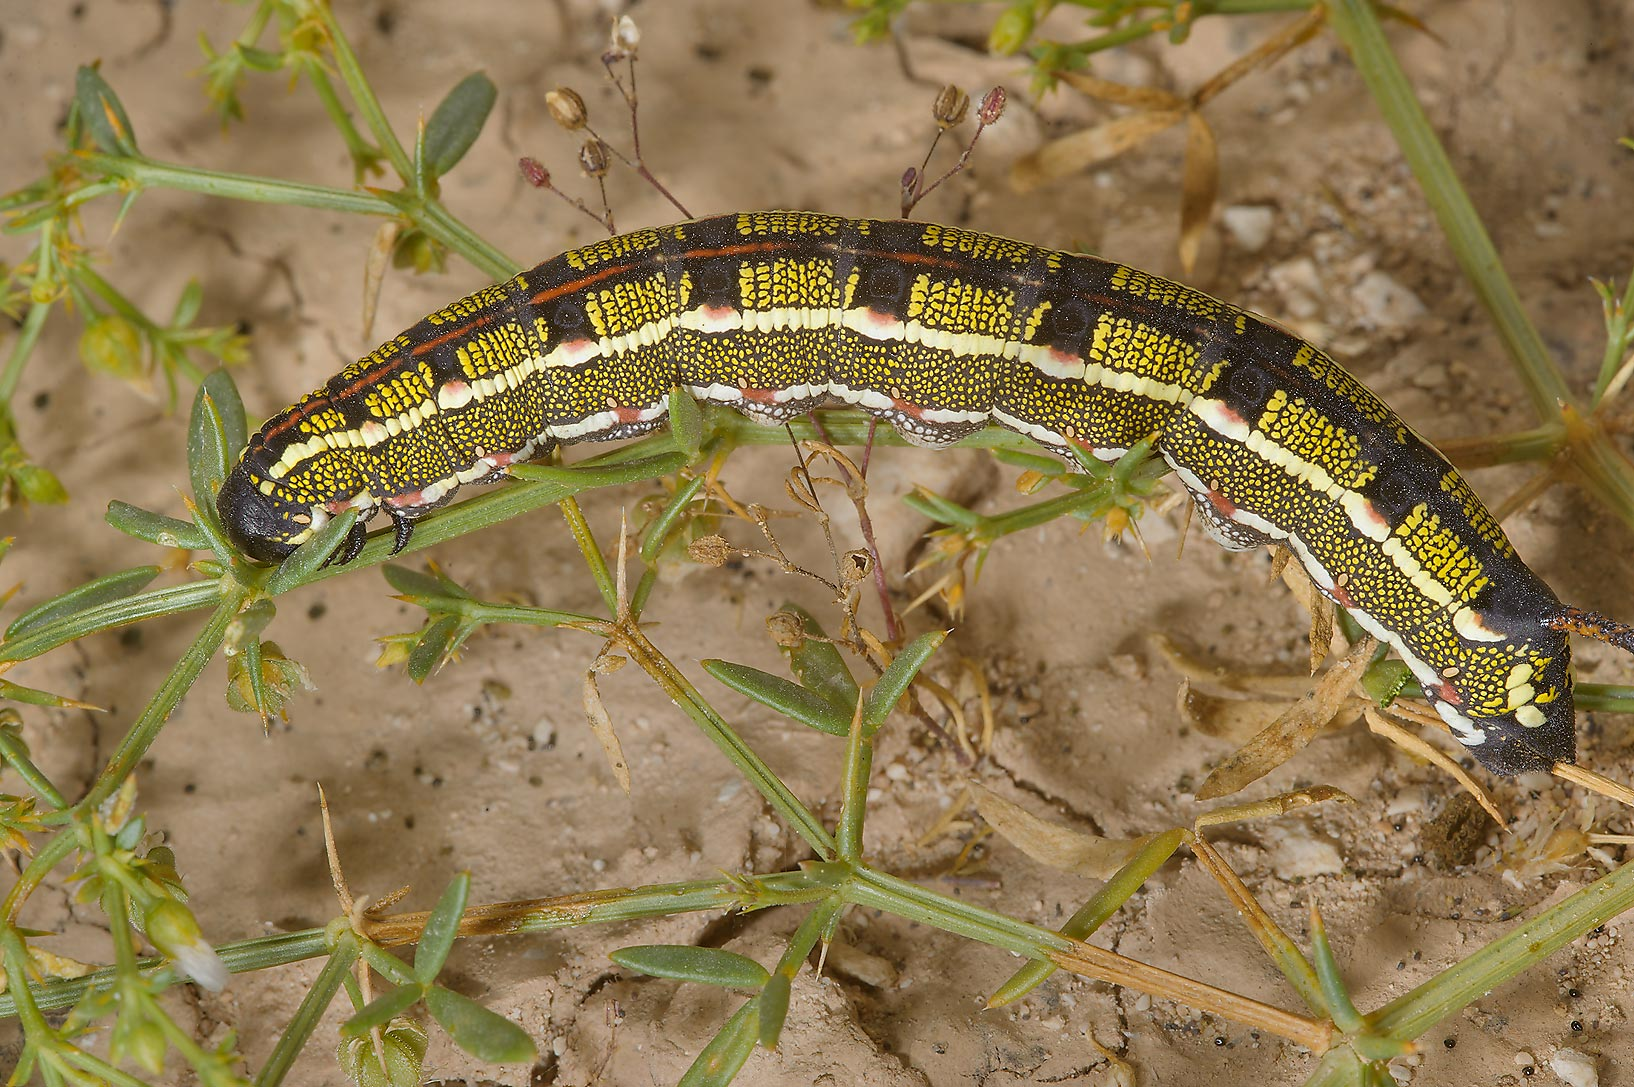 Striped Hawkmoth caterpillar (Hyles livornica...of Ras Laffan farms. Northern Qatar